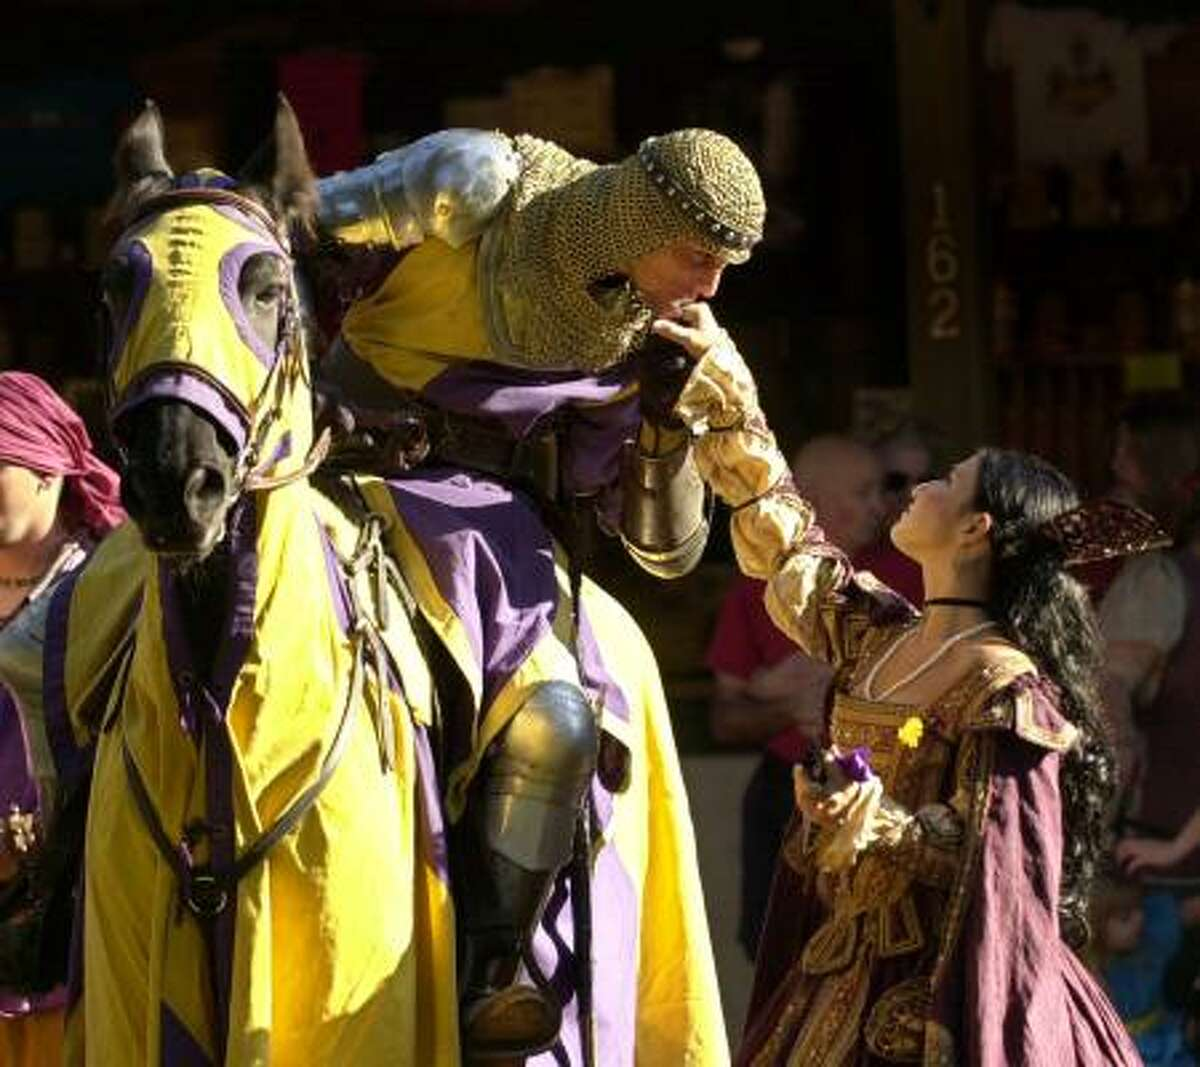 Knight Don Rodrigo Duke of Santiago, played by Chris Mitri Dynneson, kisses the hand of Dona de Salamanco, played by Sylvia Salamanca during the opening ceremony at the Texas Renaissance Festival in 2003.